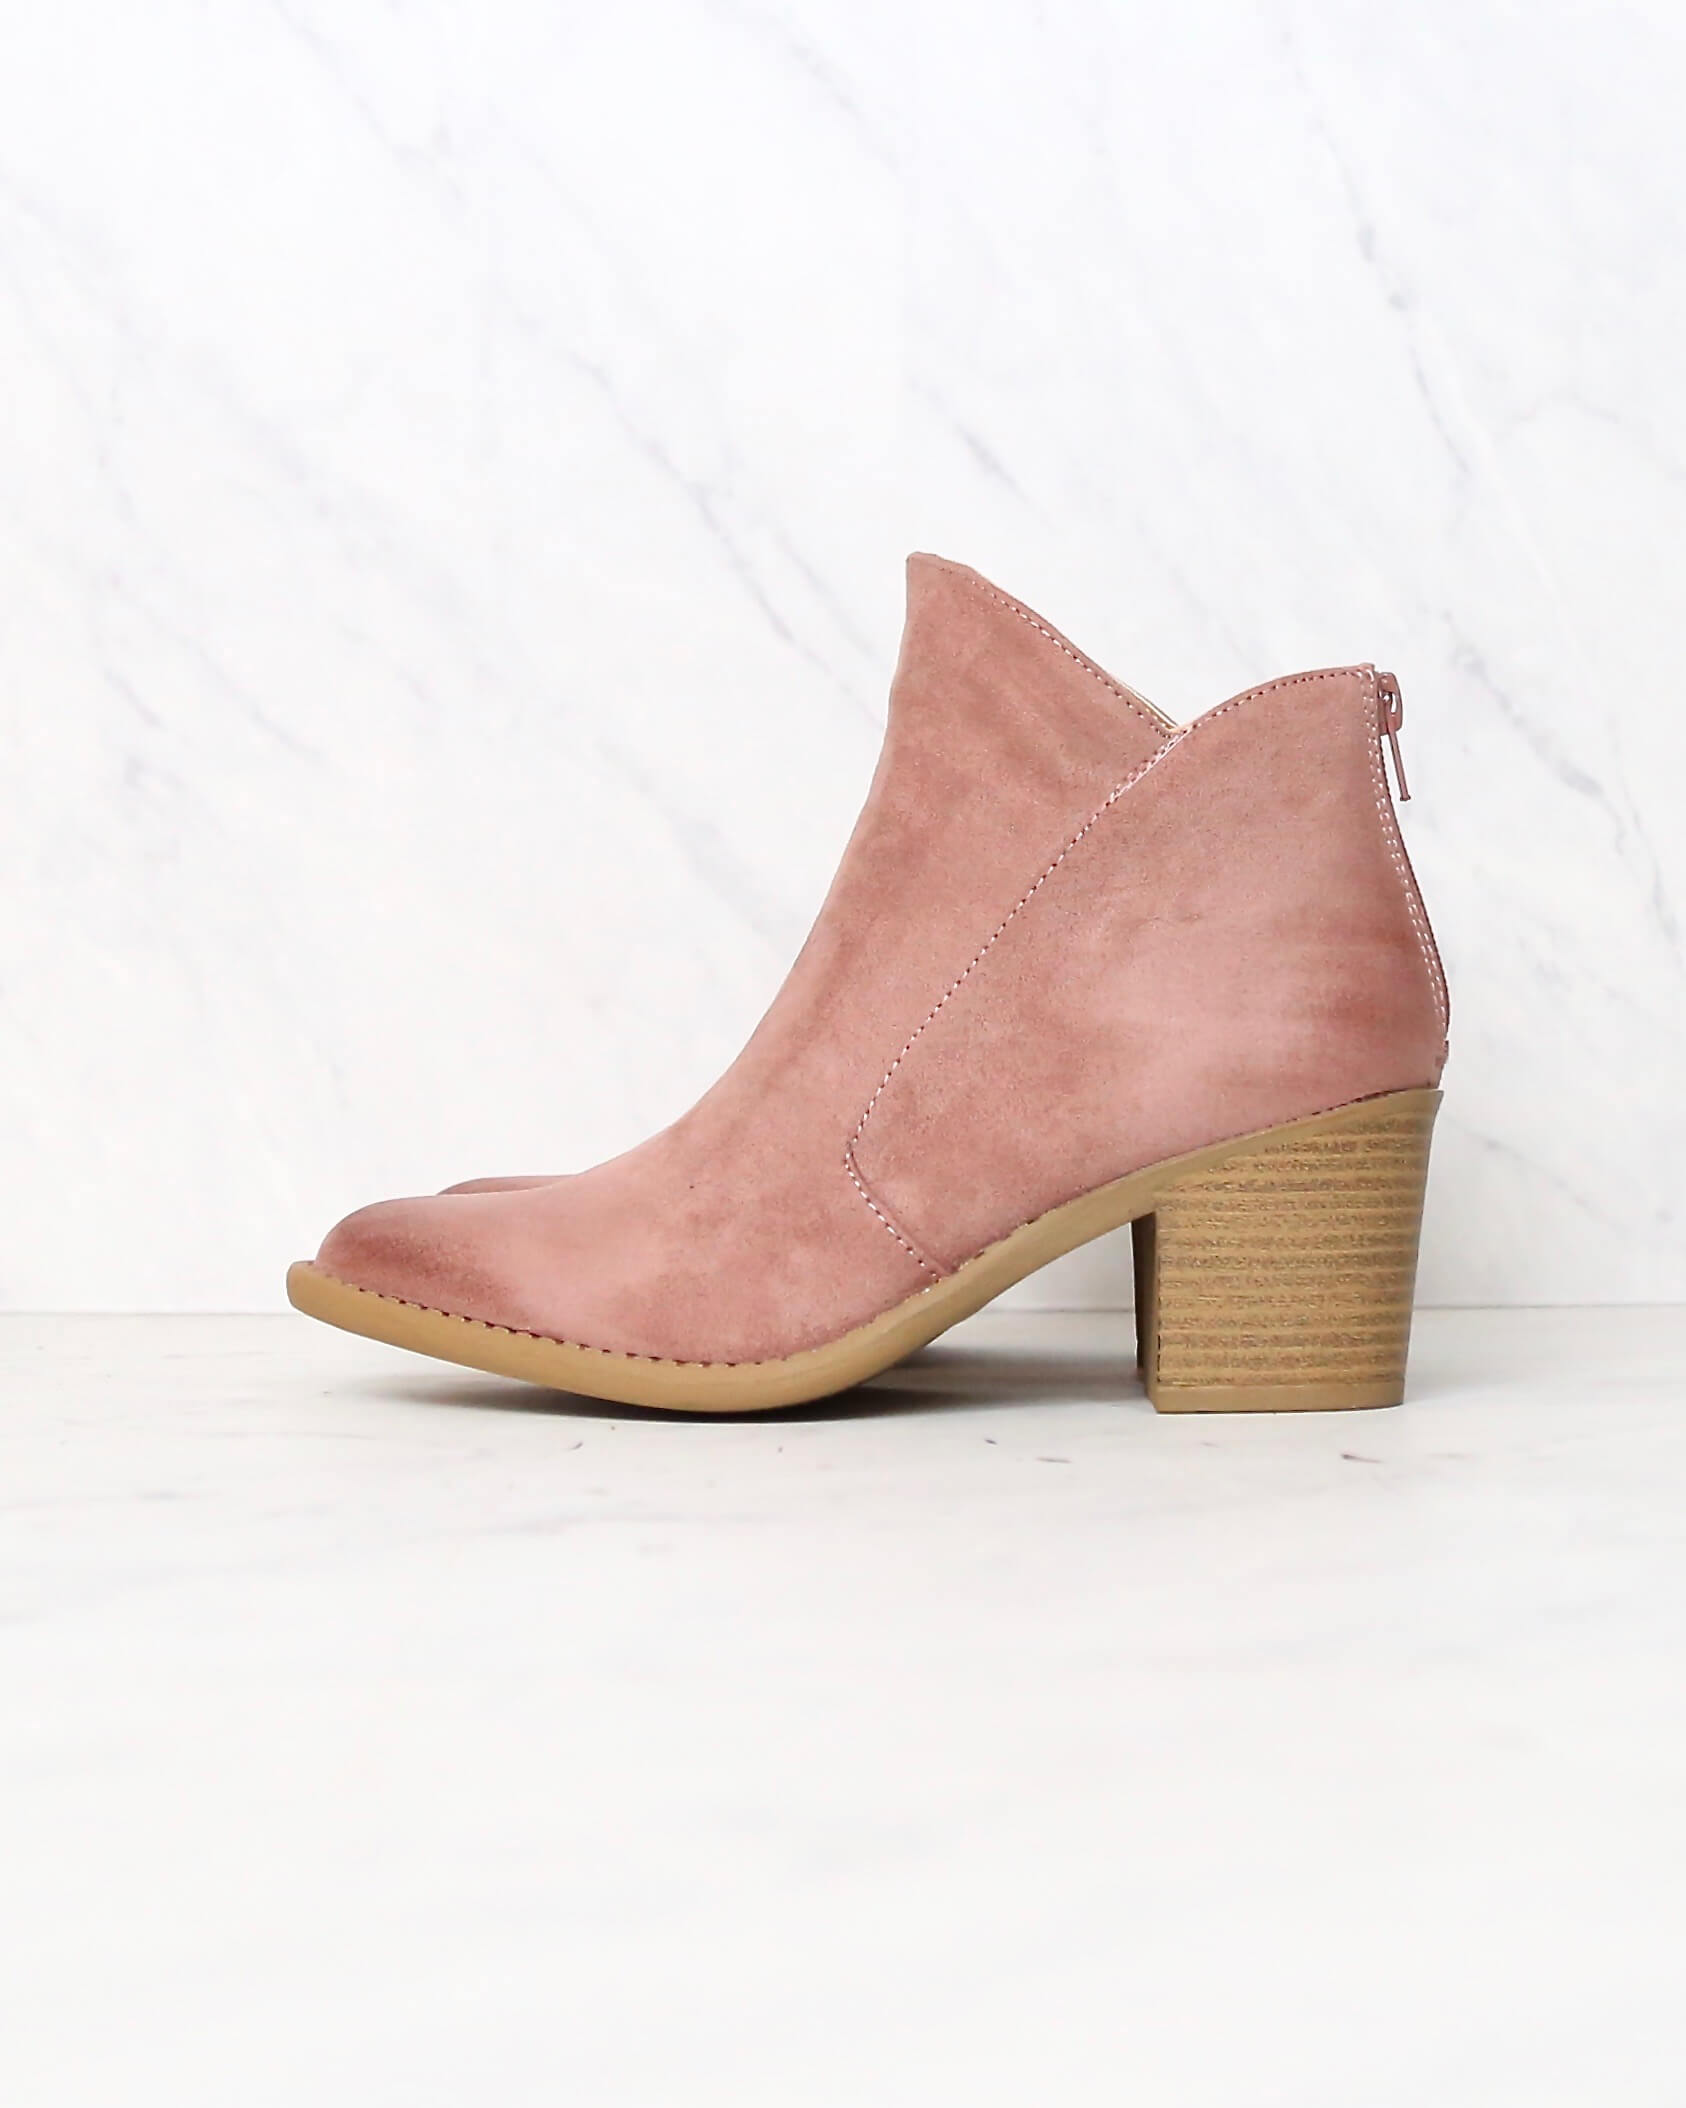 246b1e276cd almond toe chunky heel western bootie black mauve taupe qupid tobin-13